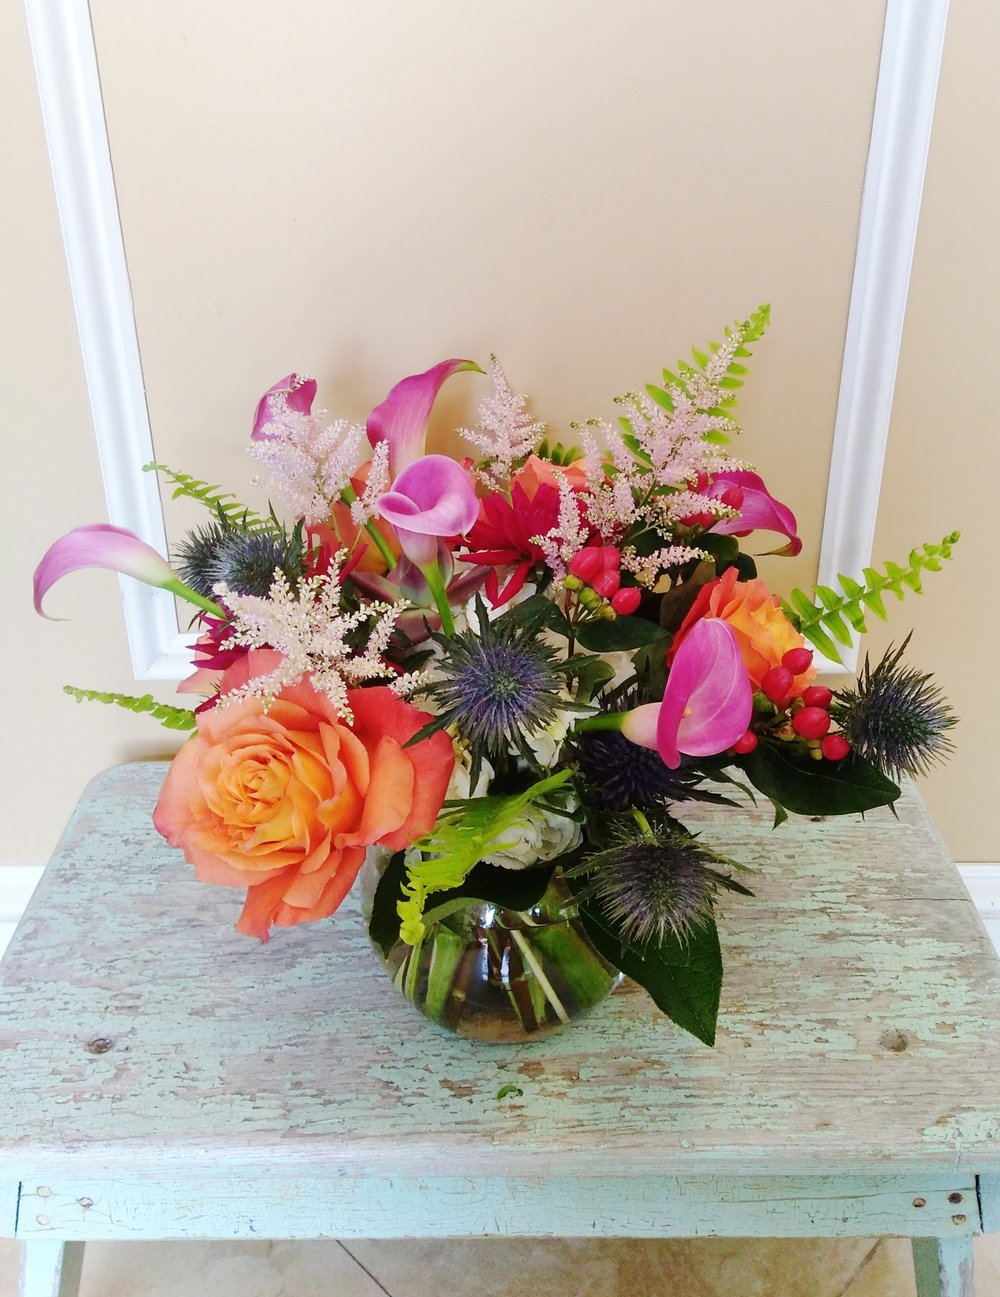 A3 $60-$85 Cluster-style arrangement. $60 as shown.